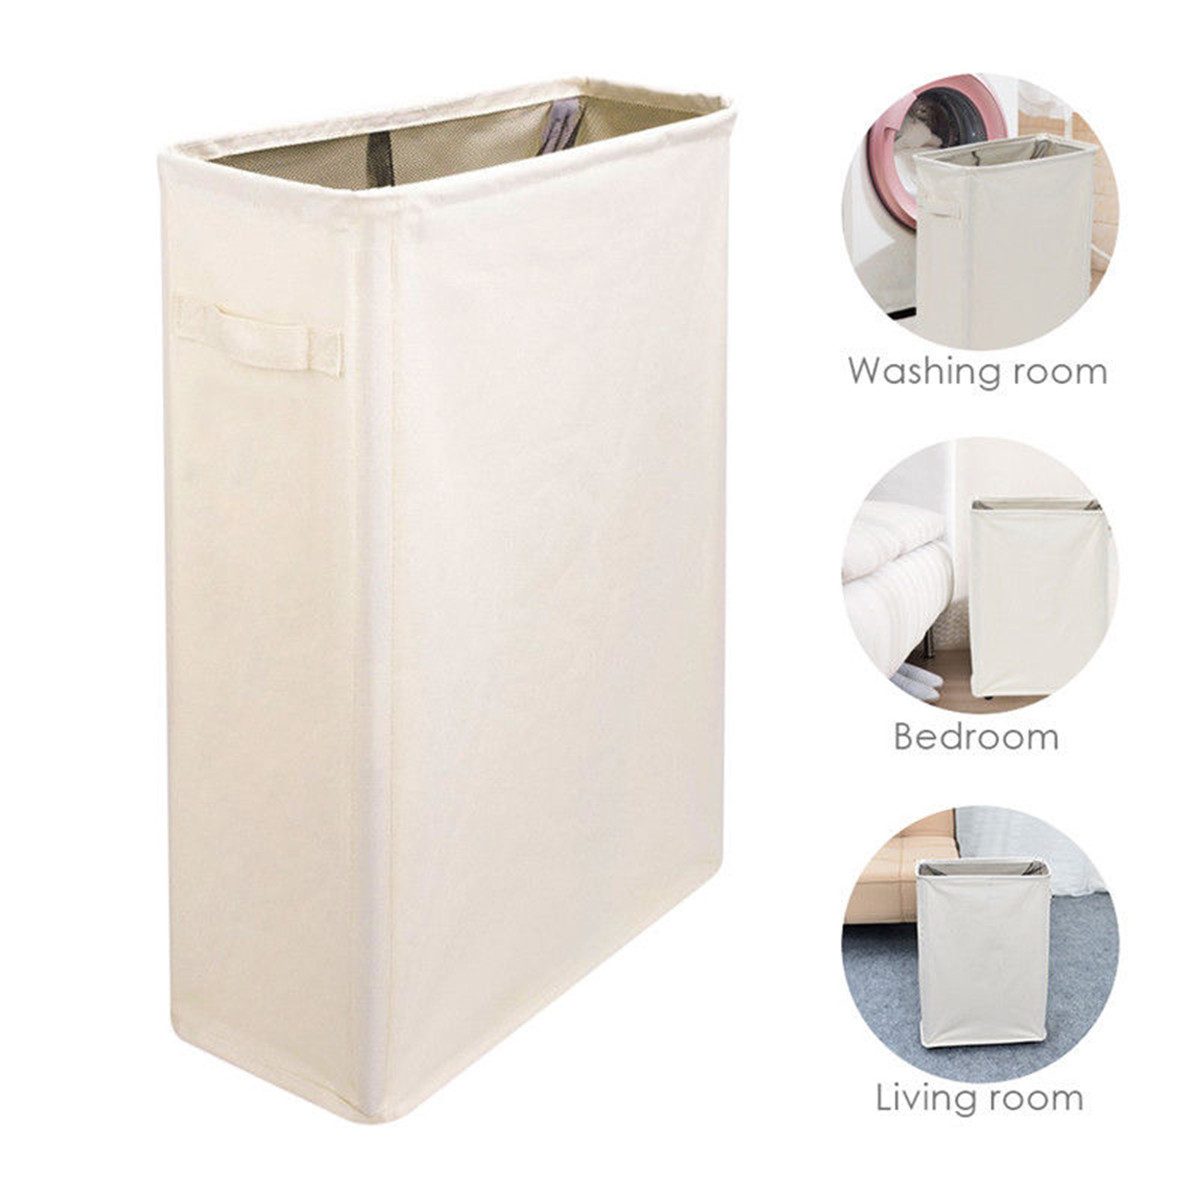 Foldable Storage Laundry Basket With Wheels Waterproof Large Storage Basket Bathroom Dirty Clothing Fabric Collapsible Hamper